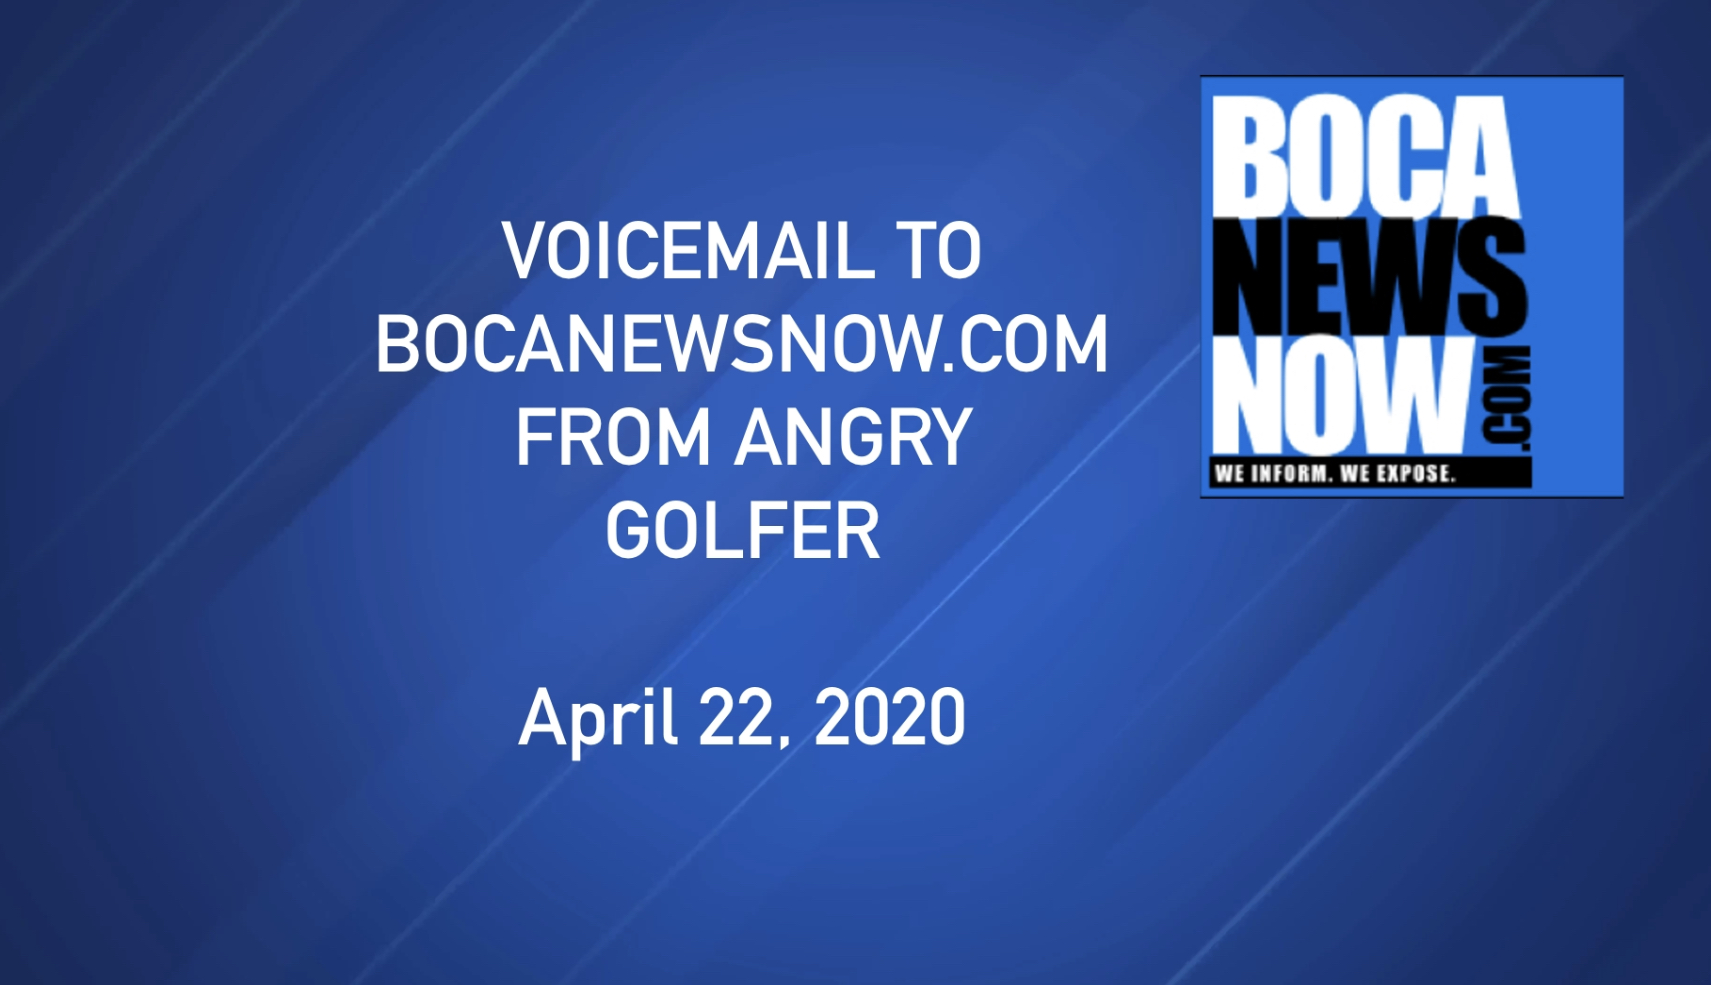 Boca news now voicemail